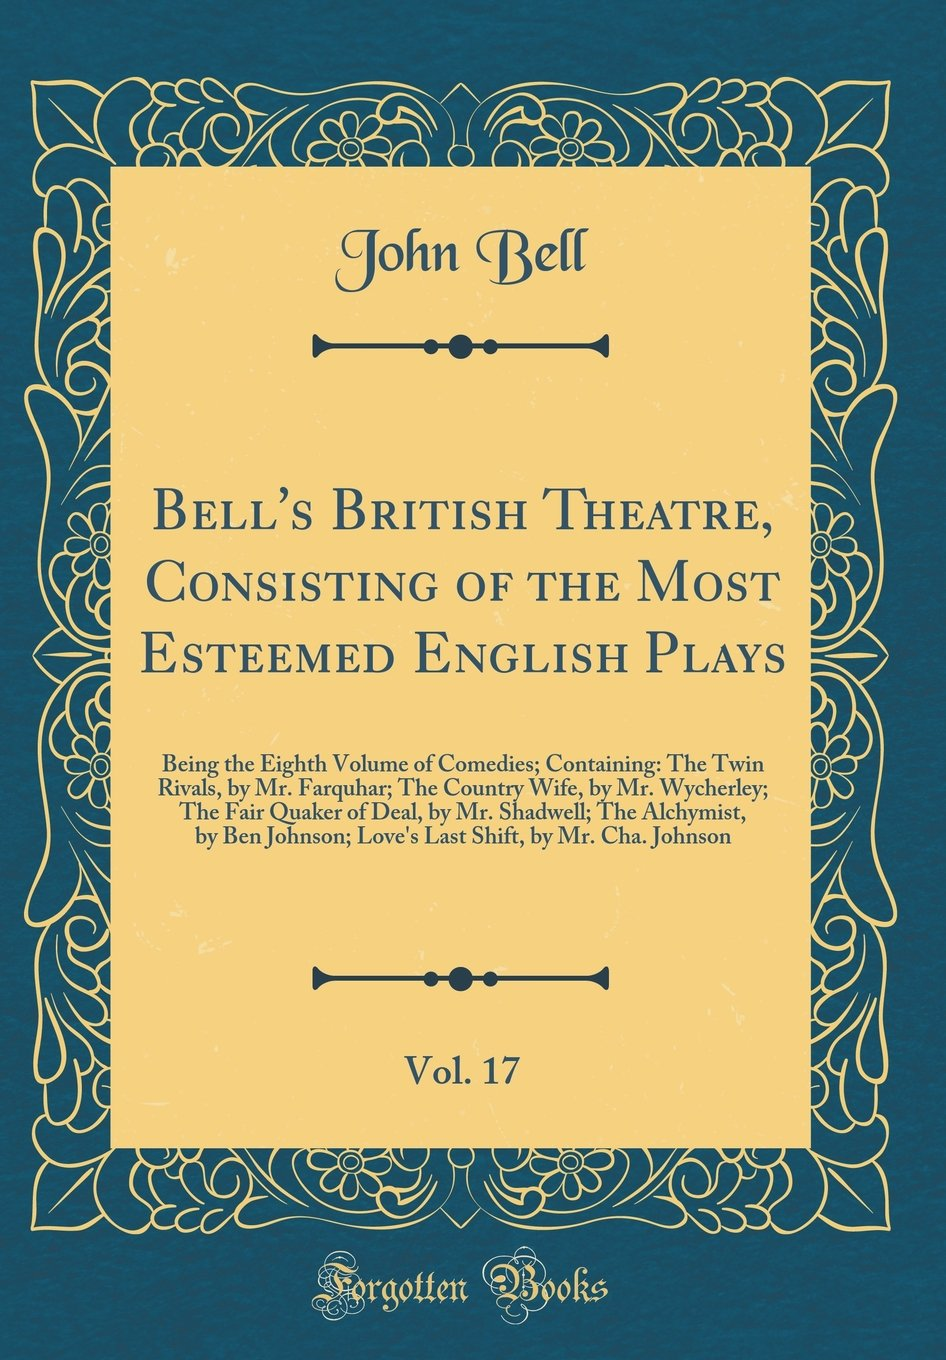 Bell's British Theatre, Consisting of the Most Esteemed English Plays, Vol. 17: Being the Eighth Volume of Comedies; Containing: The Twin Rivals, by ... of Deal, by Mr. Shadwell; The Alchymist, PDF